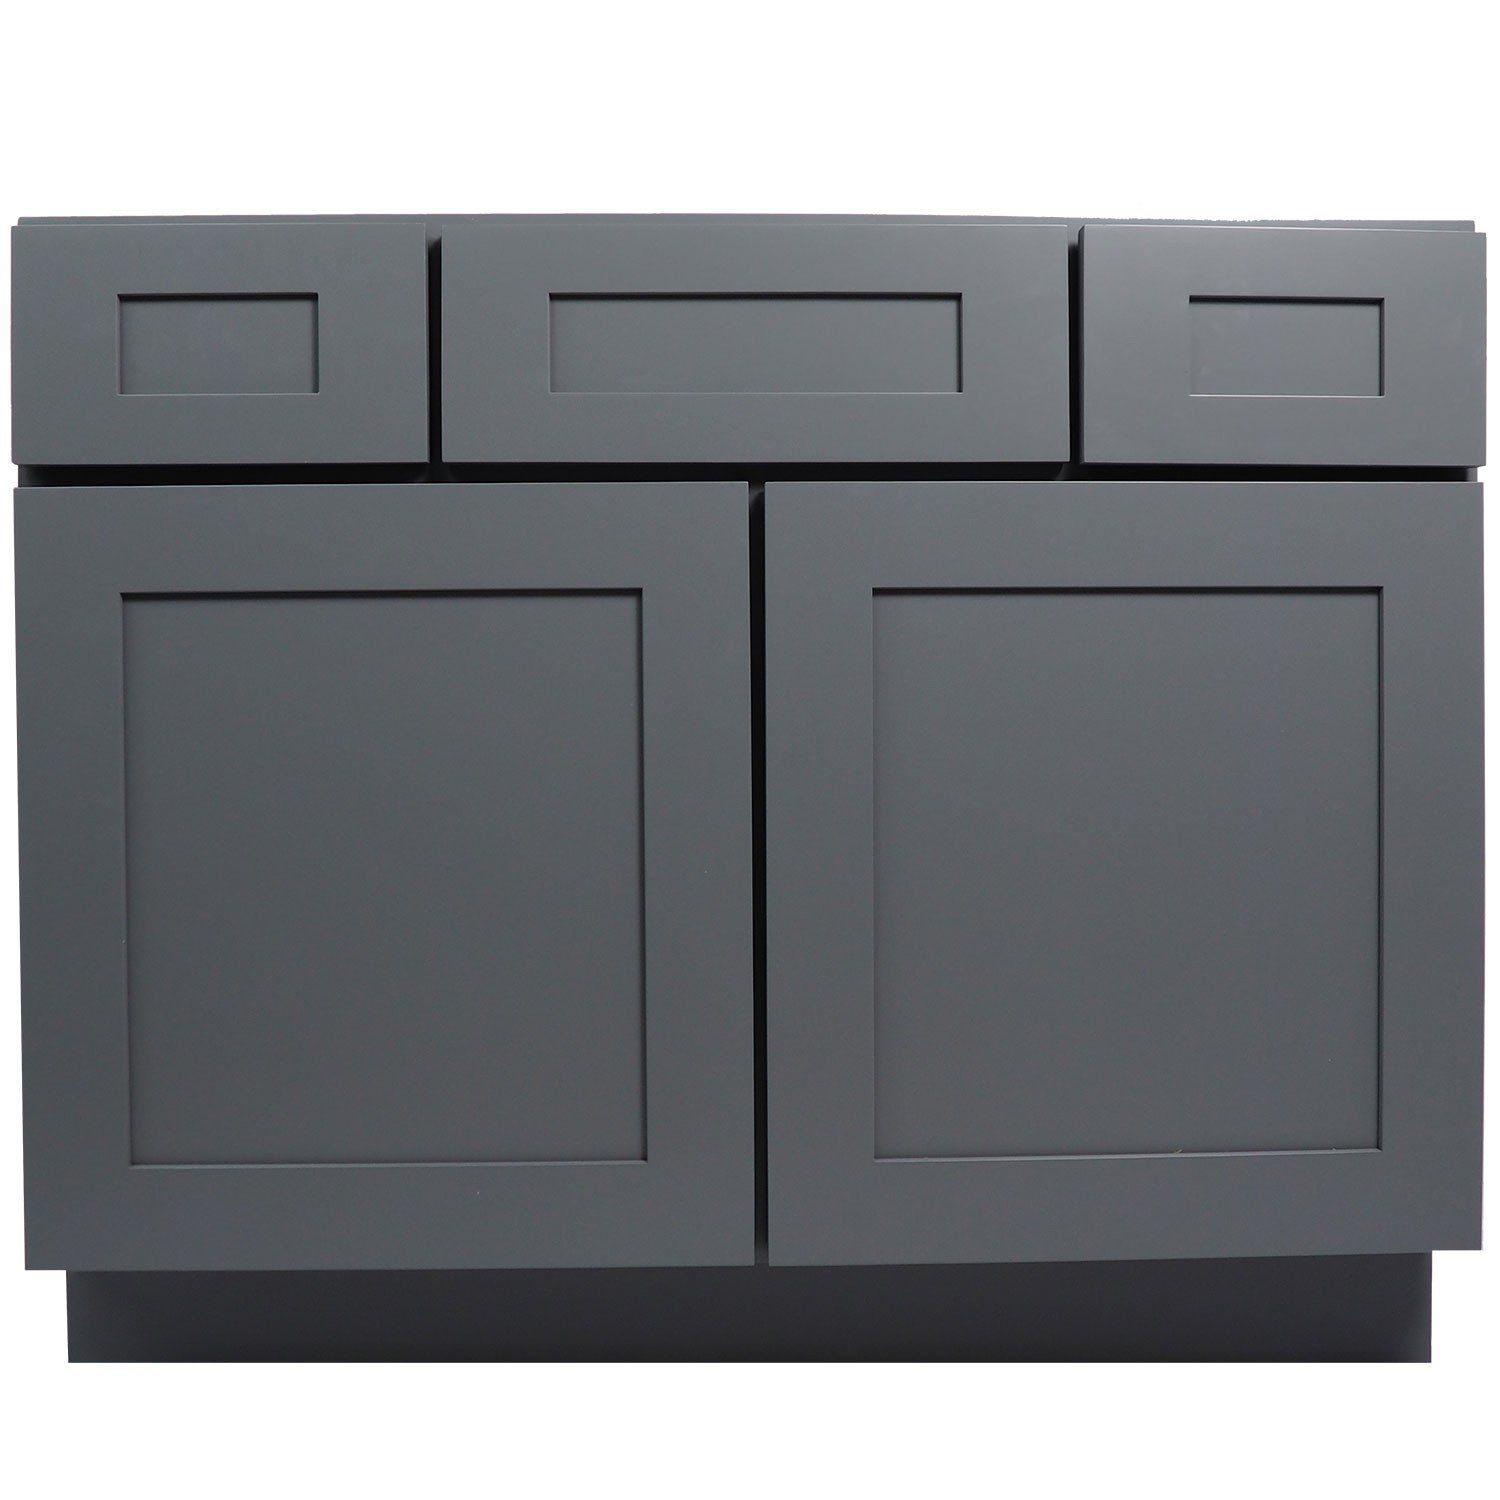 42 Inch bathroom vanity cabinet in solid wood Shaker Gray with soft close drawers are doors  sc 1 st  Pinterest & 42 Inch bathroom vanity cabinet in solid wood Shaker Gray with soft ...